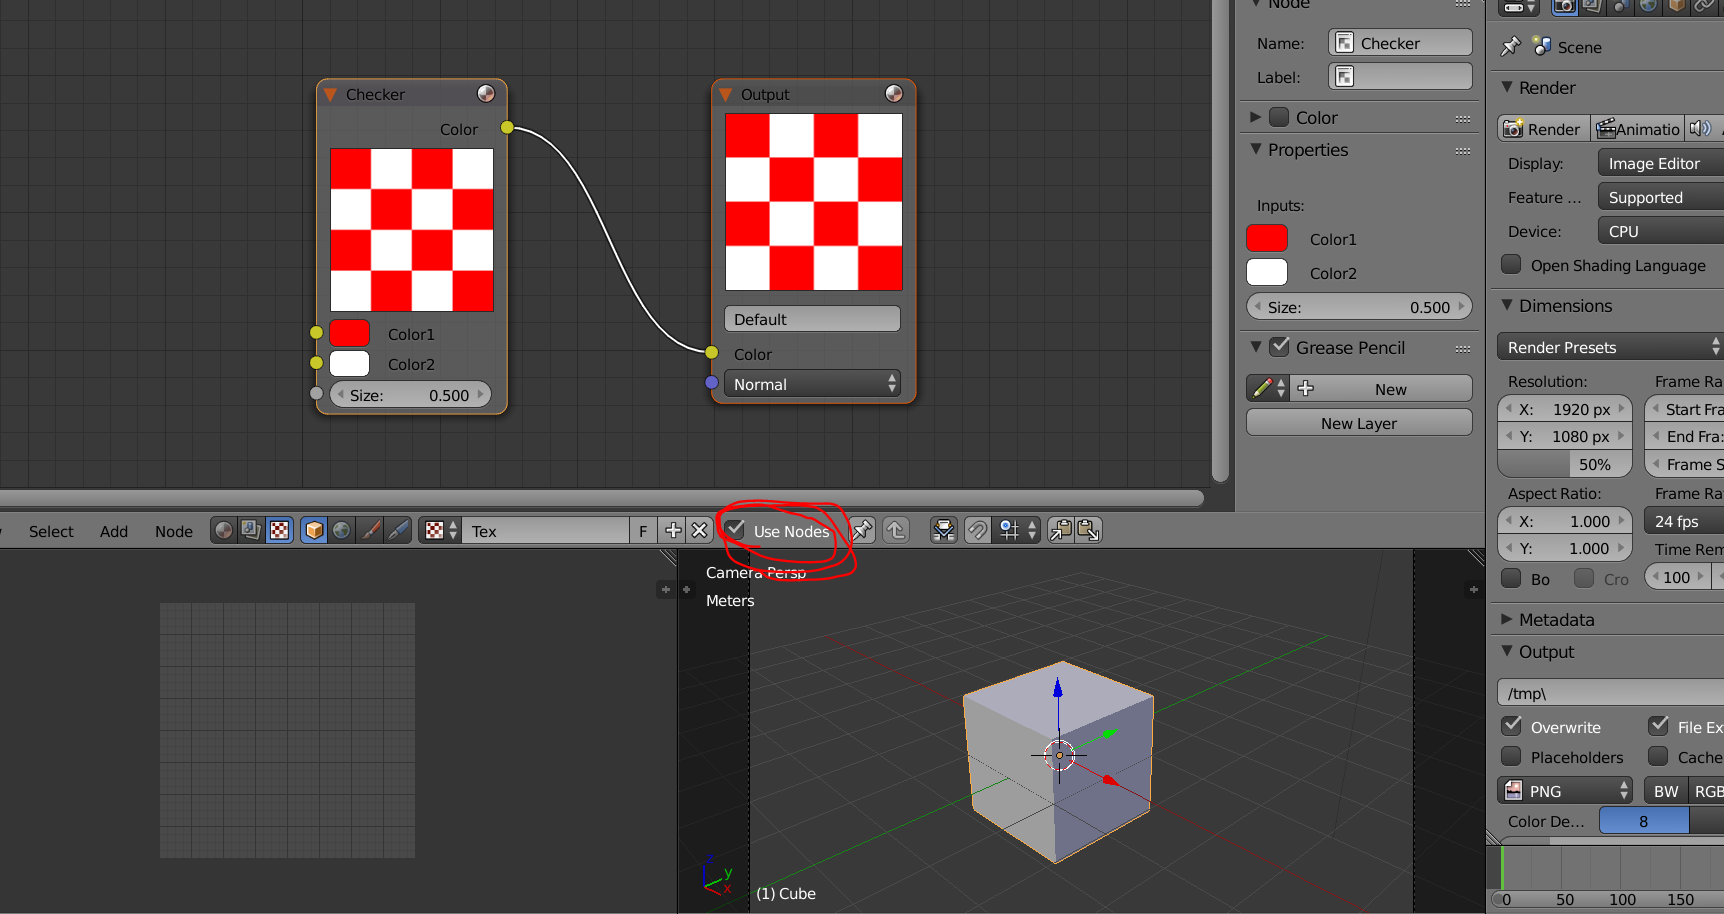 how do i get to use the node editor with my displacement modifier